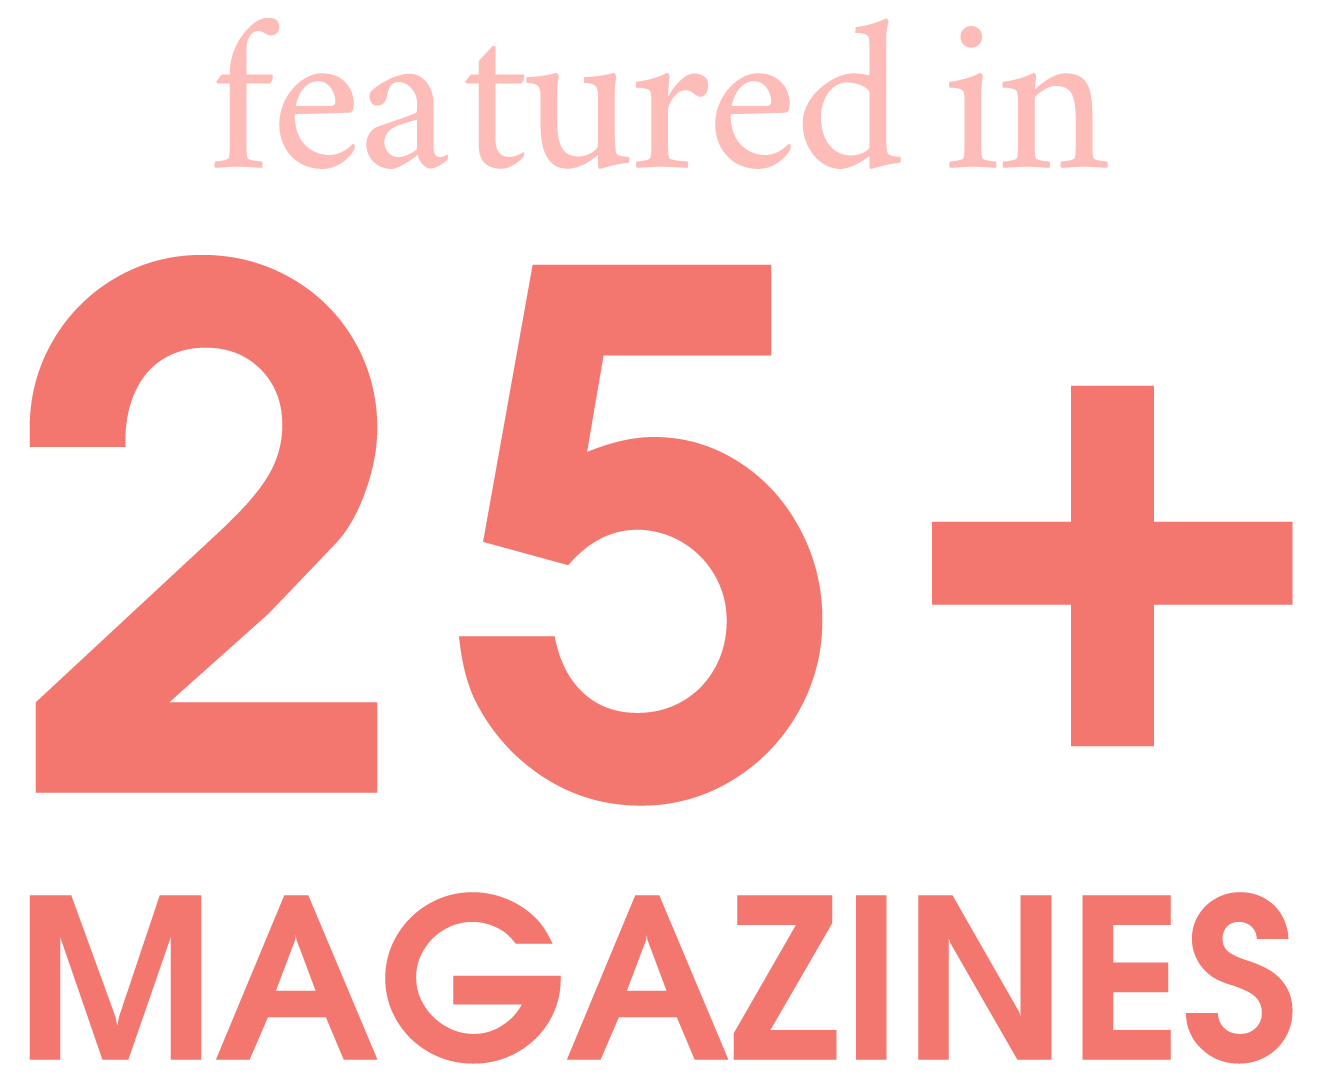 Featured in 25+ Magazines